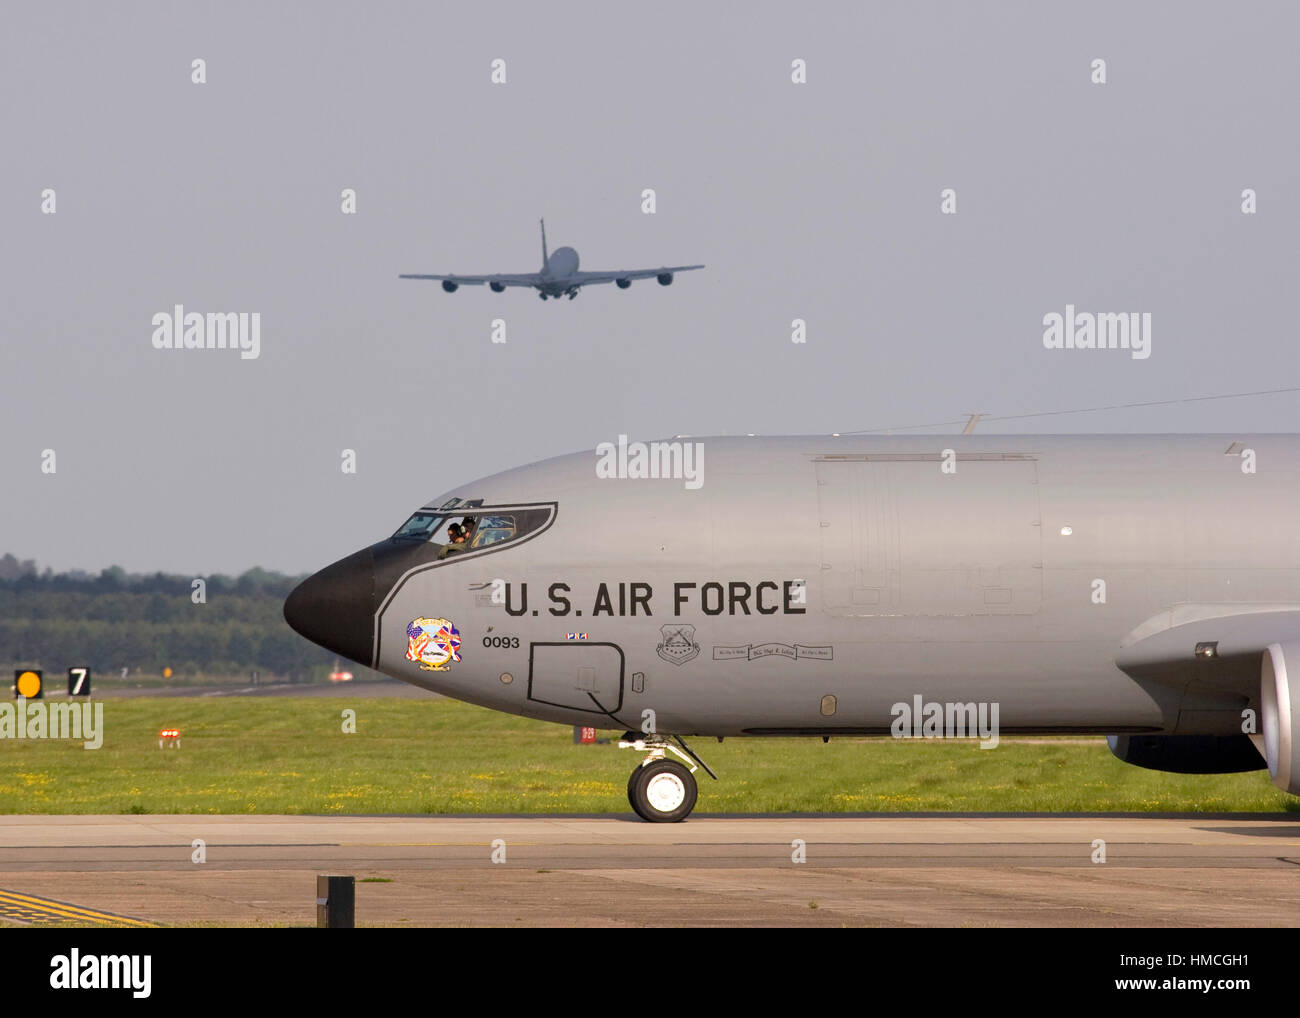 United States Air Force Boeing KC-135R Stratotanker 58-0093 taxies at RAF Mildenhall while another KC-135R 58-0036 takes off in the background. Stock Photo